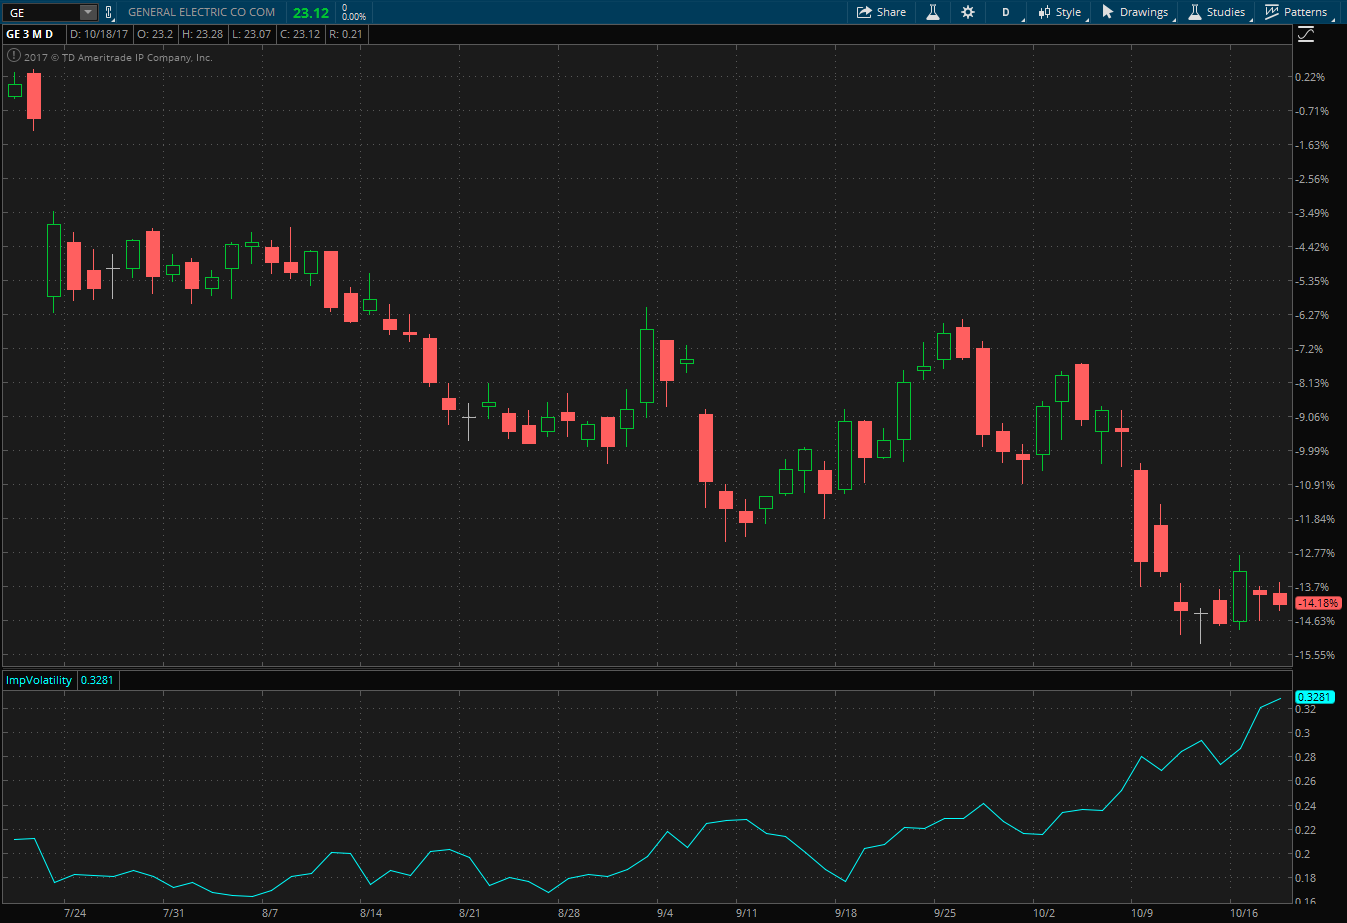 GE stock's three month performance and implied volatility shown in a thinkorswim chart